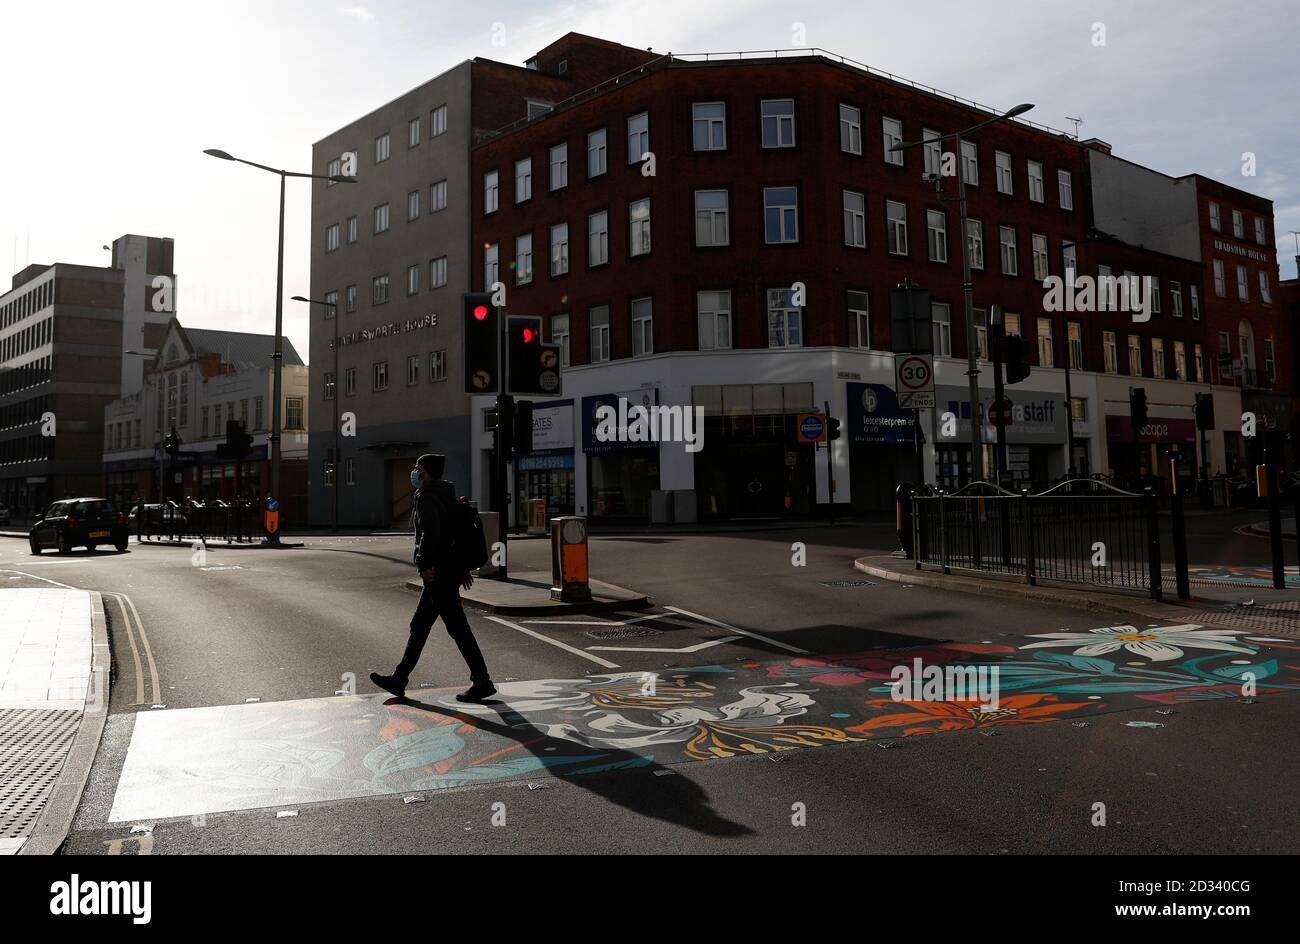 Leicester, Leicestershire, UK. 7th October 2020. A man walks on pedestrian crossing redesigned with colourful coverings 100 days since the UKÕs first local coronavirus pandemic lockdown was announced in the city. Credit Darren Staples/Alamy Live News. Stock Photo